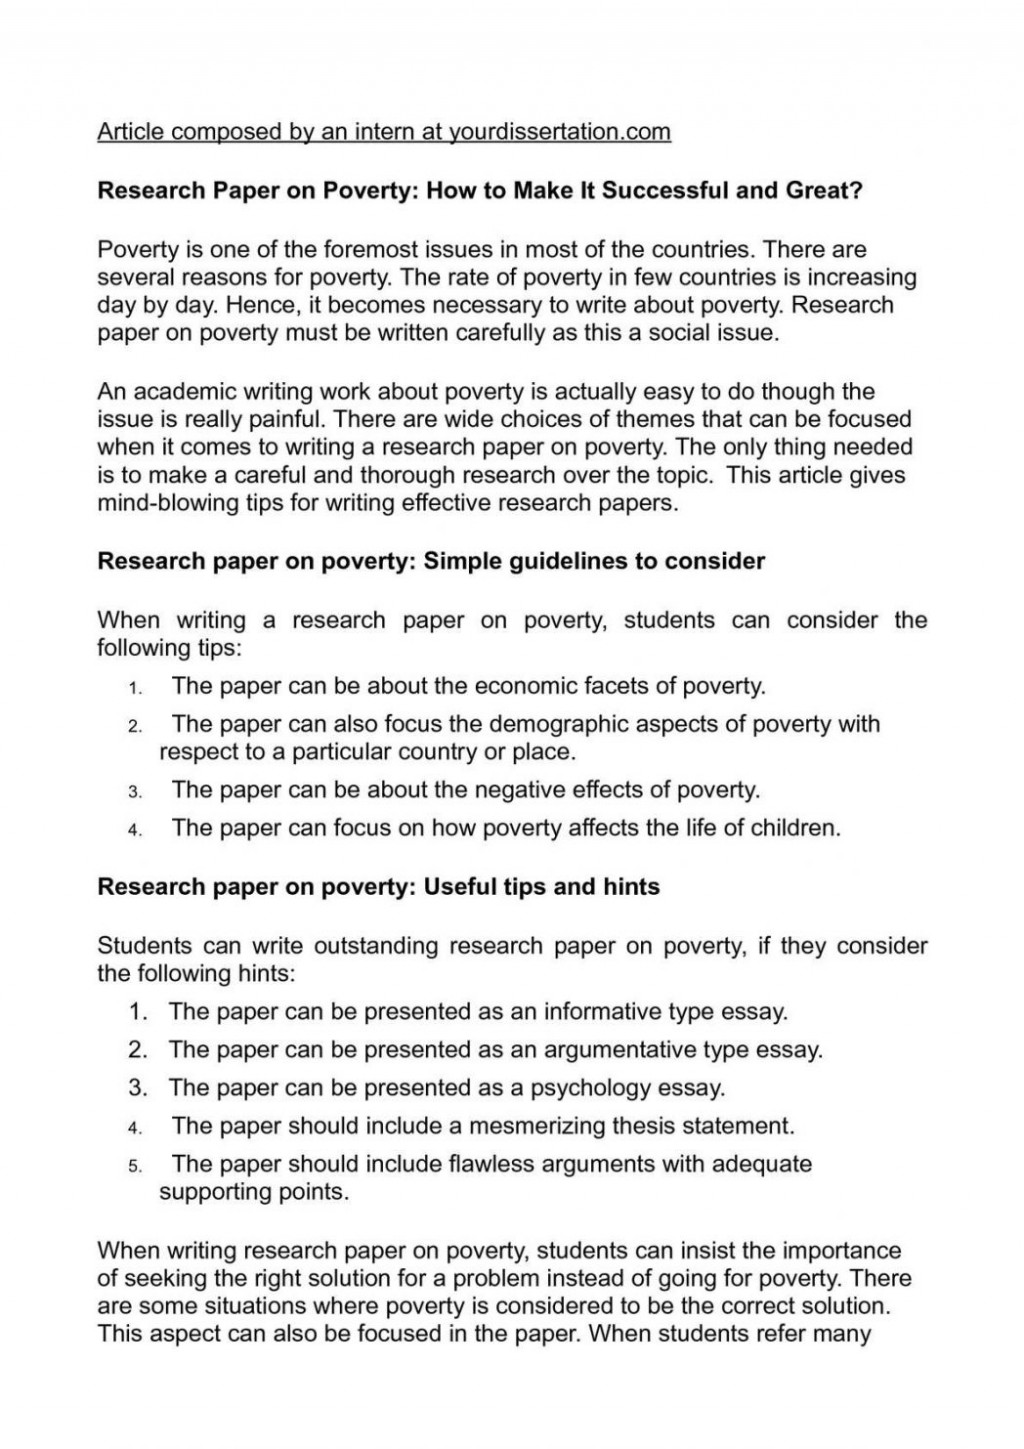 010 Research Paper On Poverty How To Make It Successful And Essay Writing In Pakist India Pakistan 1048x1483 Example Problem Wondrous Of Solution Large